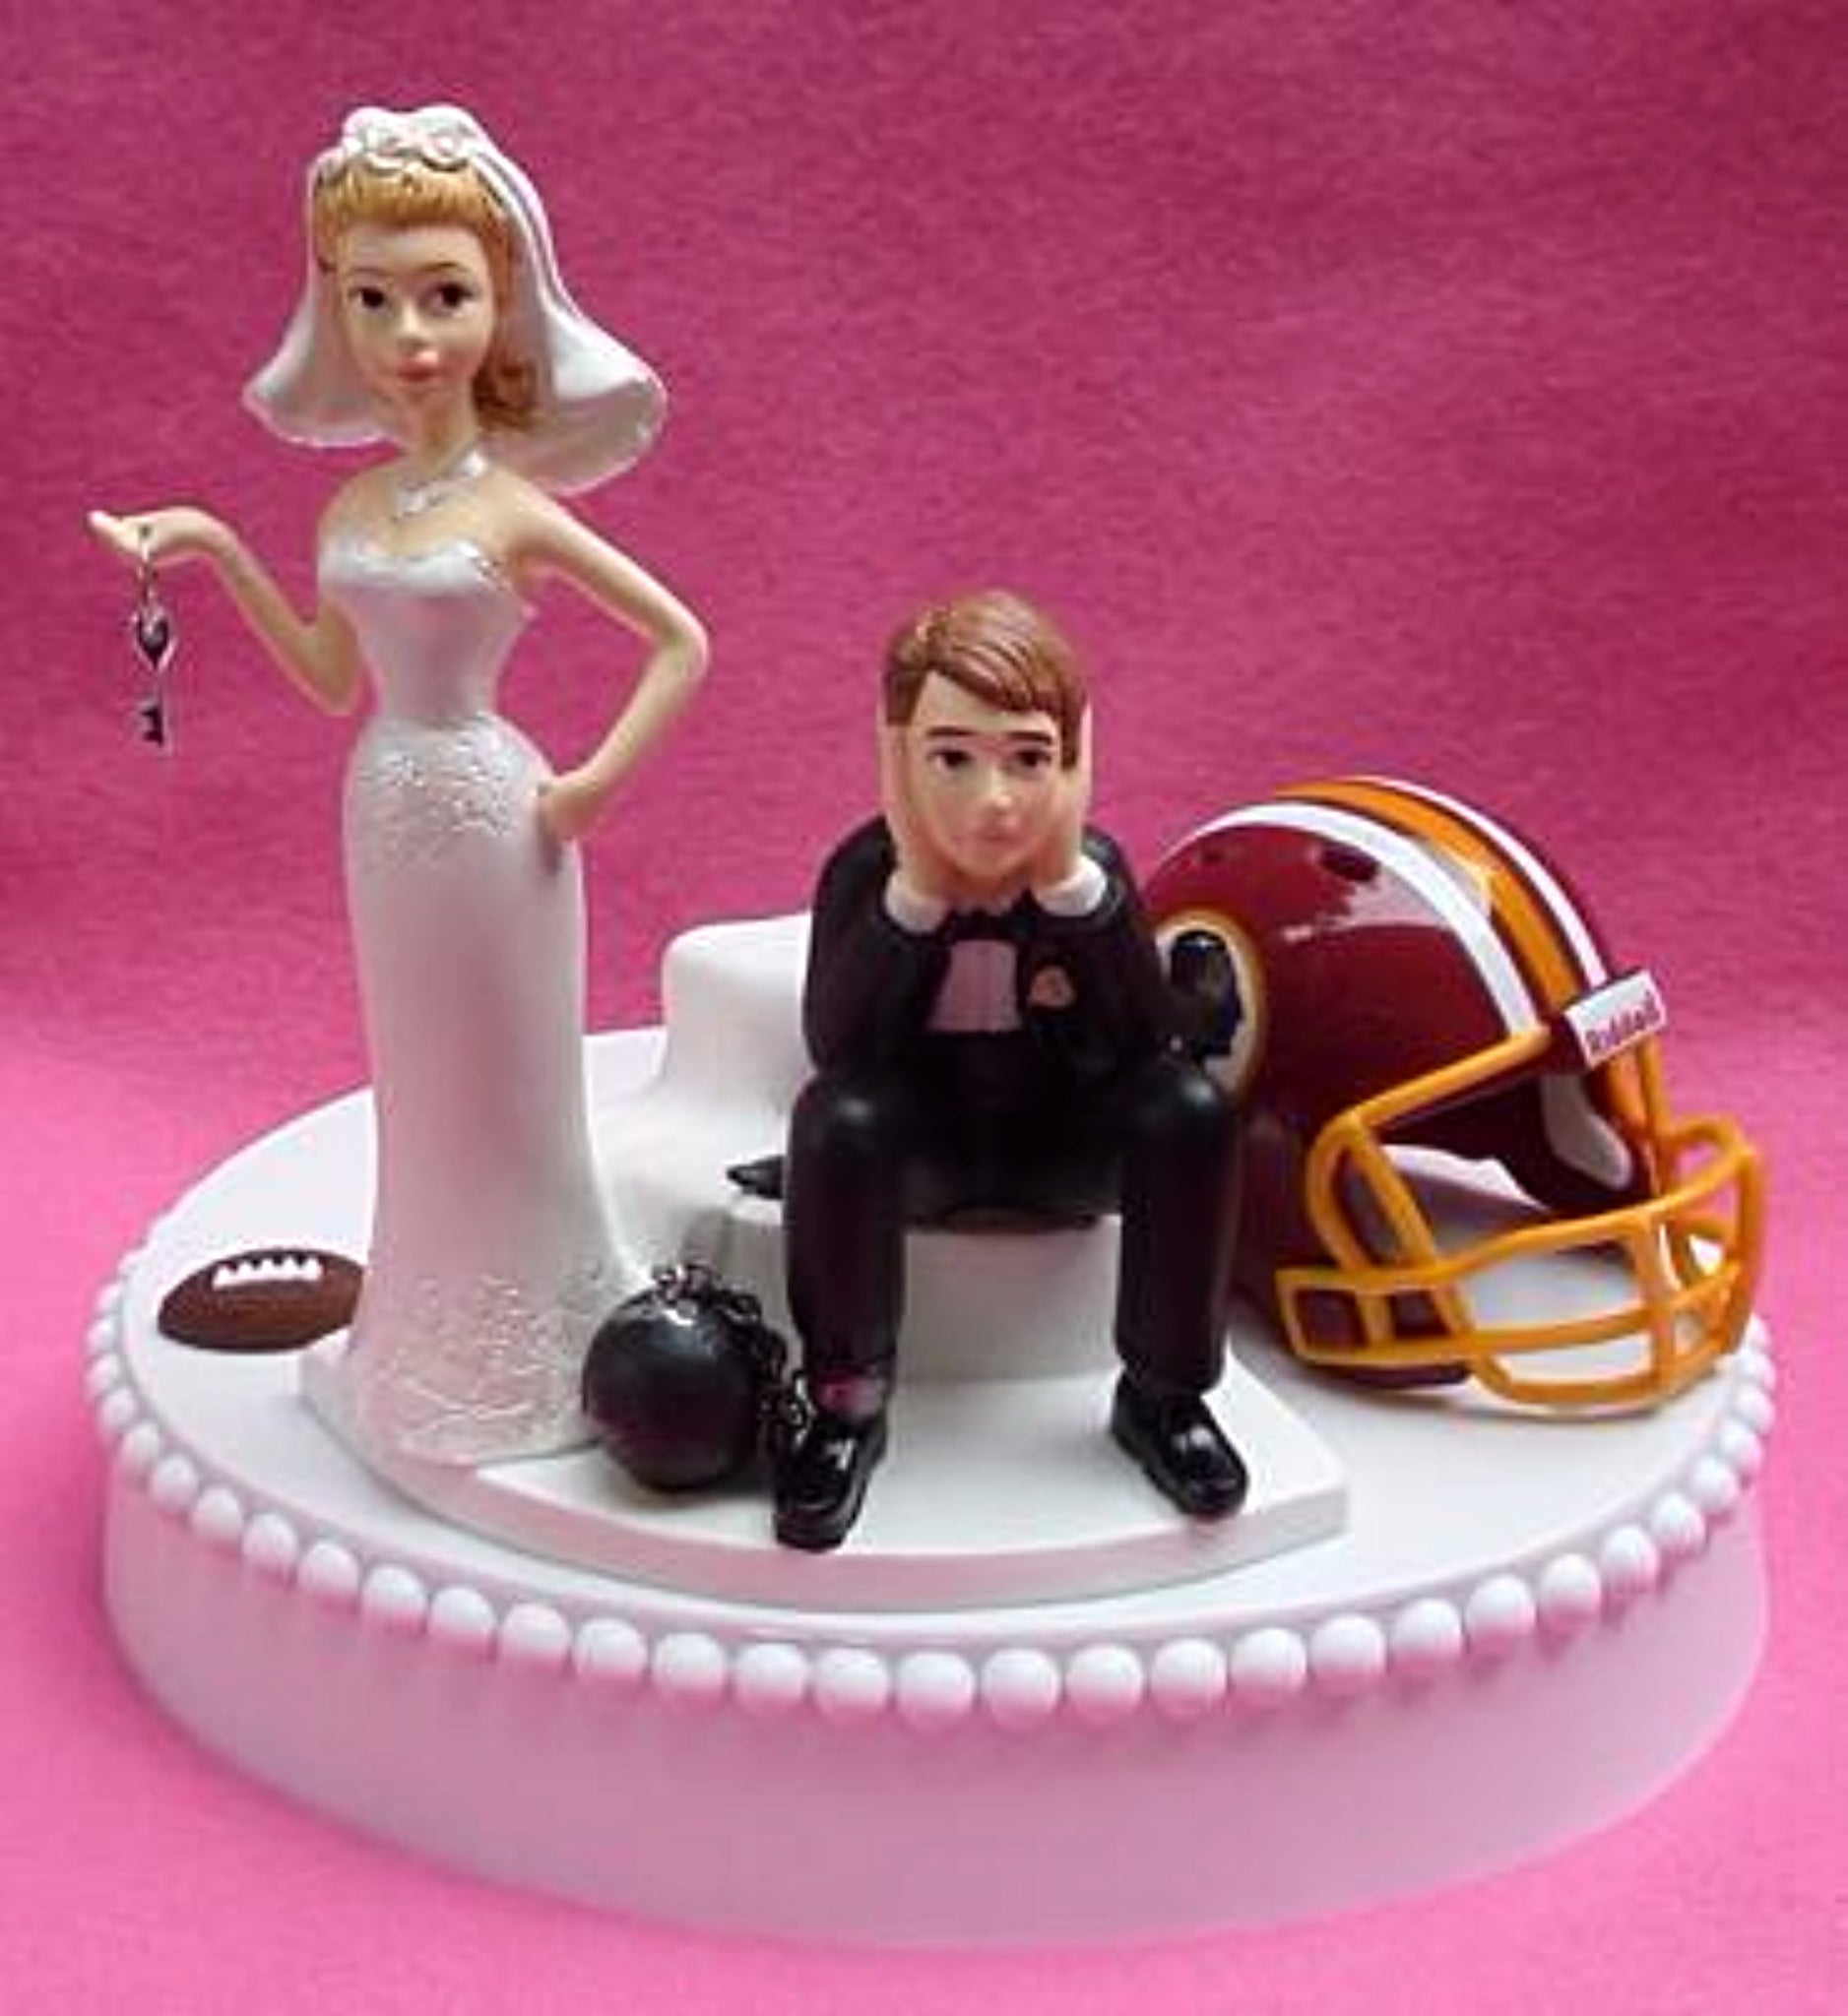 Wedding Cake Topper - Washington Redskins Football Themed Key